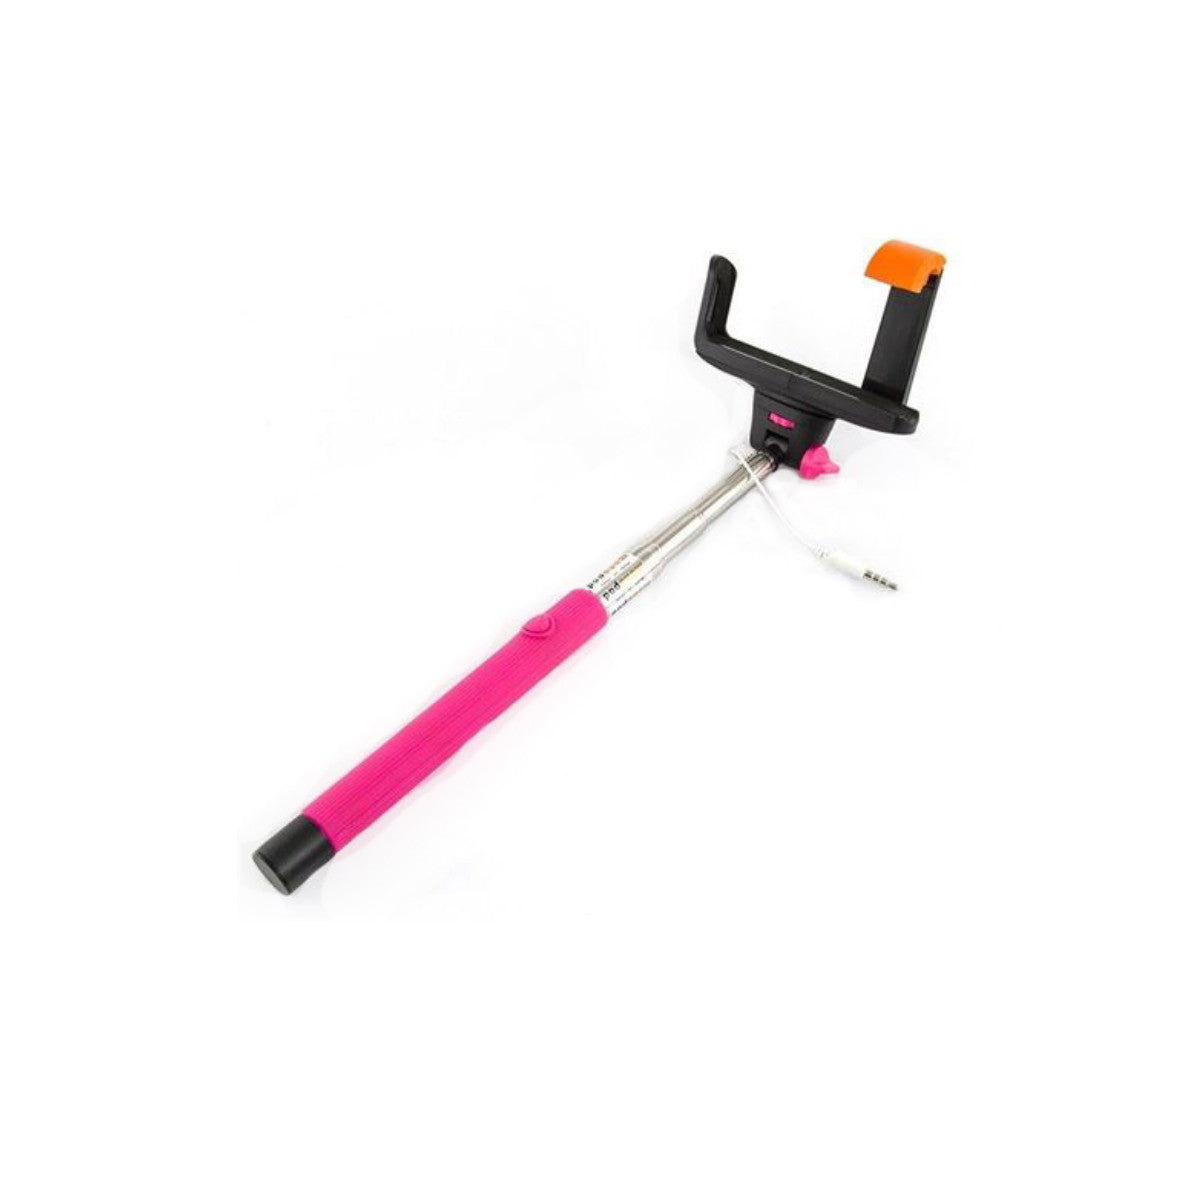 Selfie Stick Monopole With Camera Button For Apple Iphone